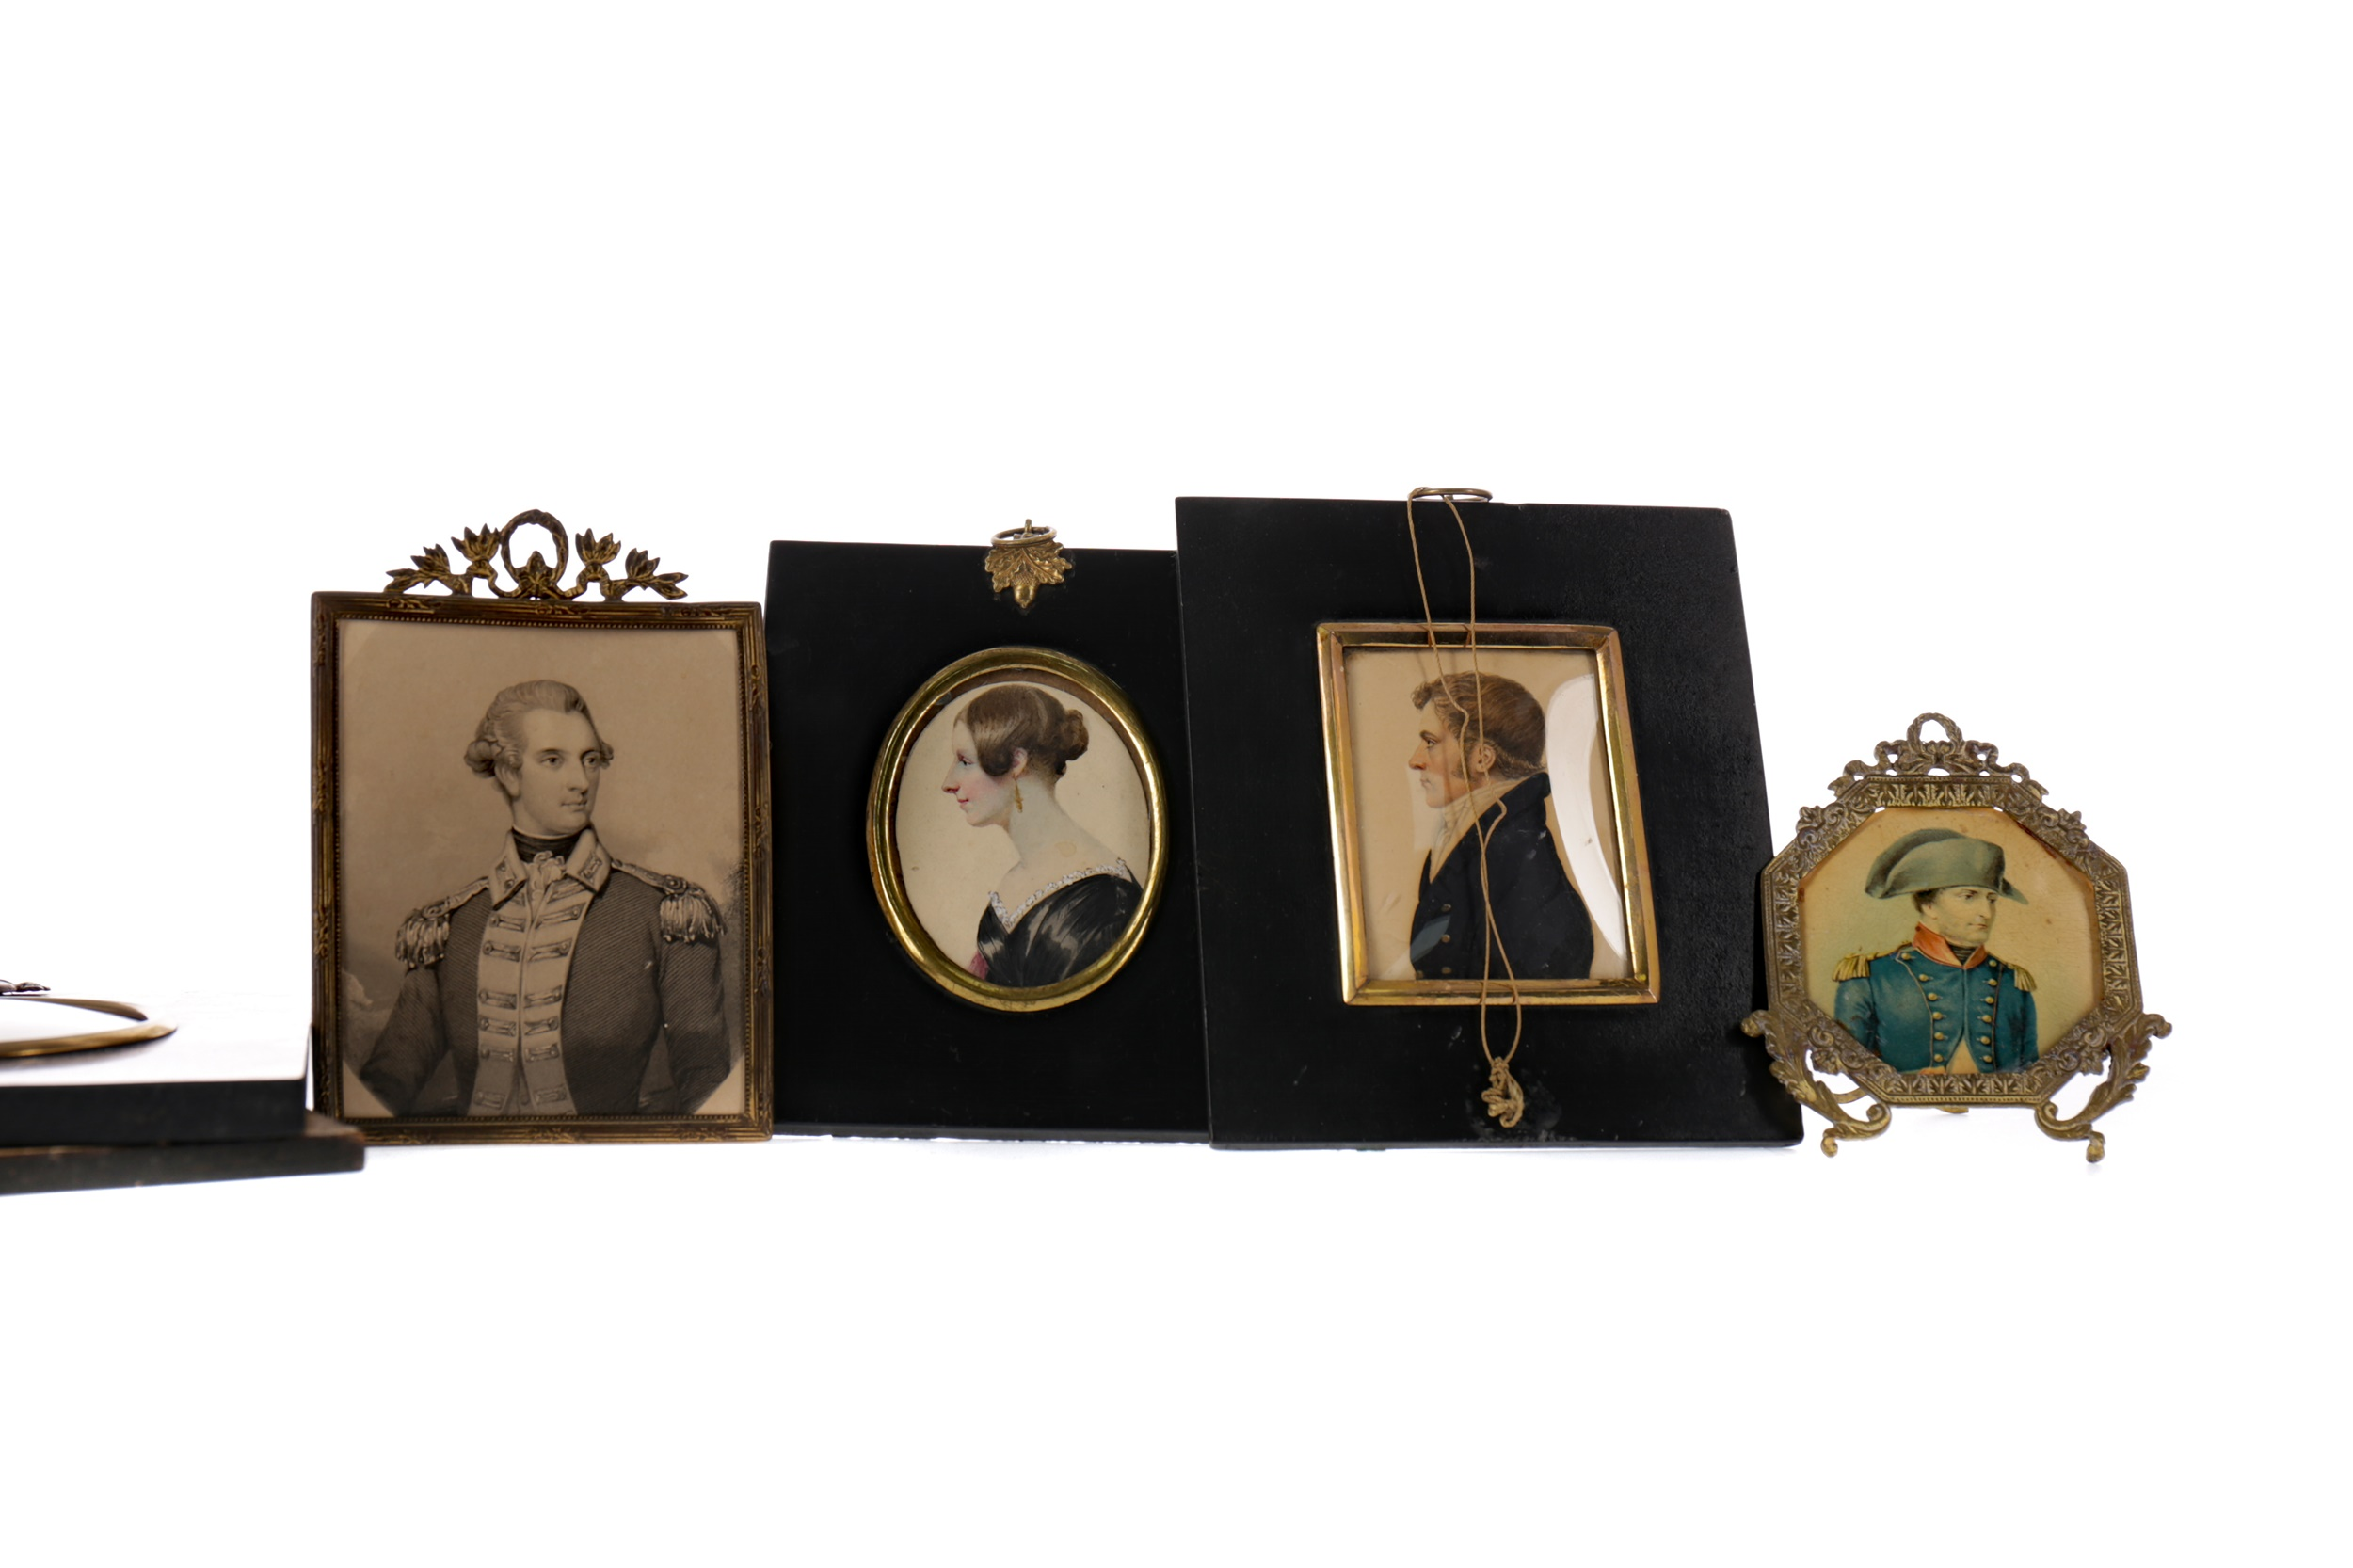 A COLLECTION OF THREE FRAMED 19TH CENTURY PORTAIT MINIATURES, ALONG WITH FIVE FRAMES